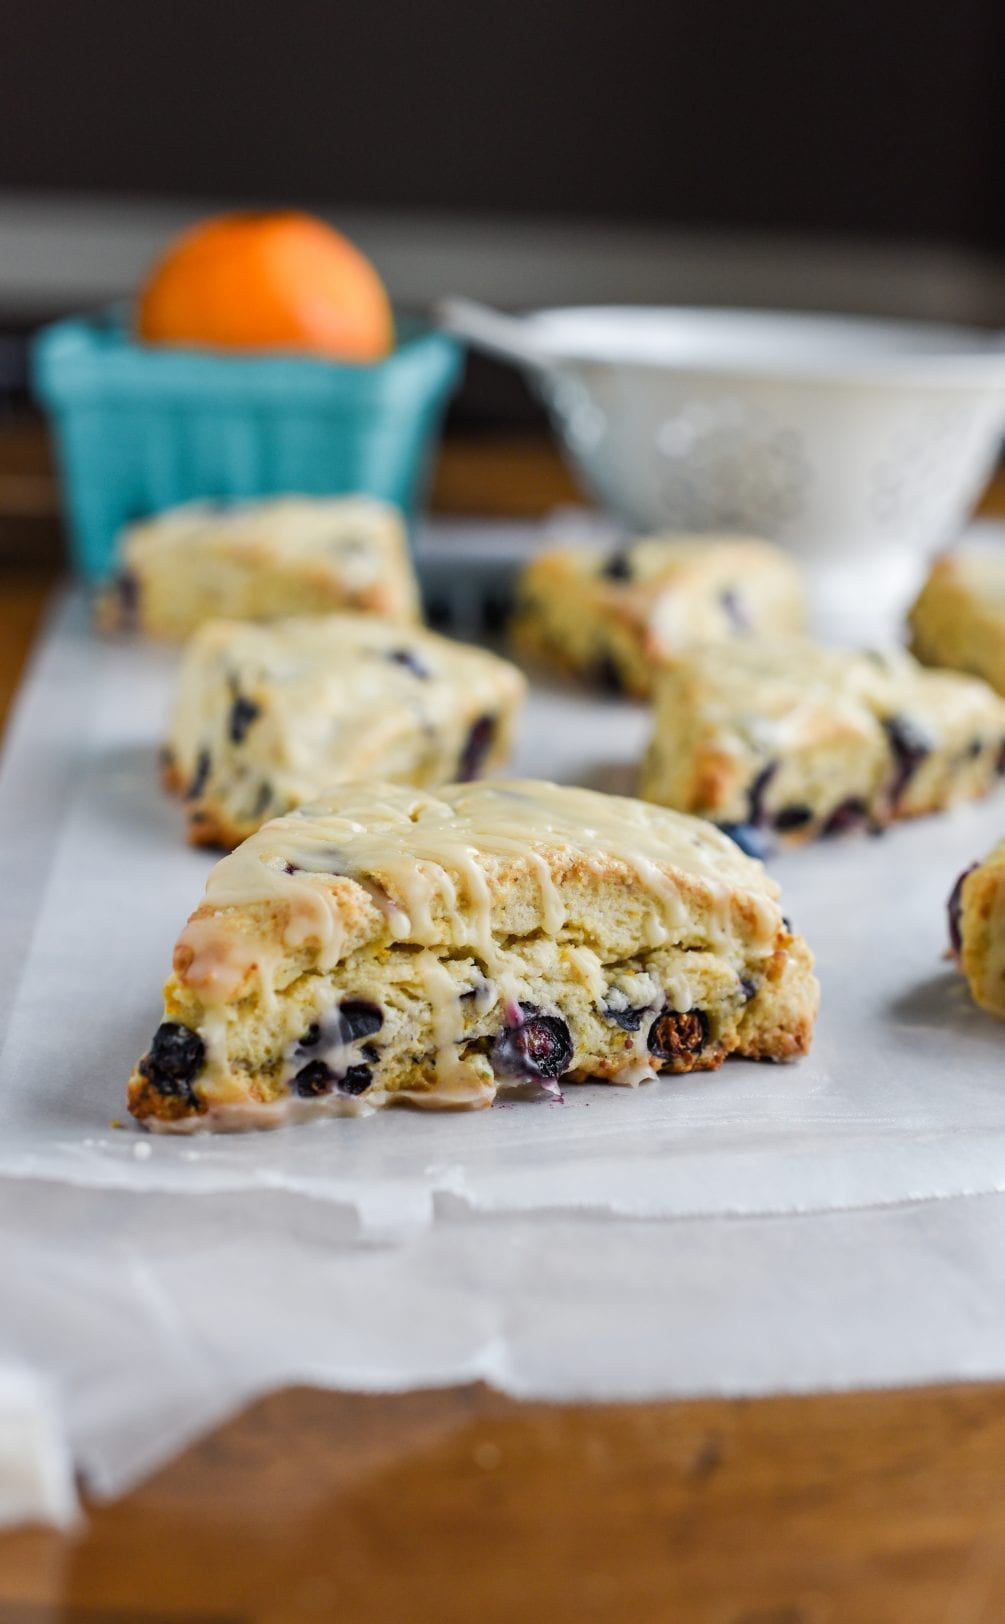 Easter might look a little different this year, but that doesn't mean brunch doesn't go on! These Blueberry Citrus Scones will be the perfect addition!